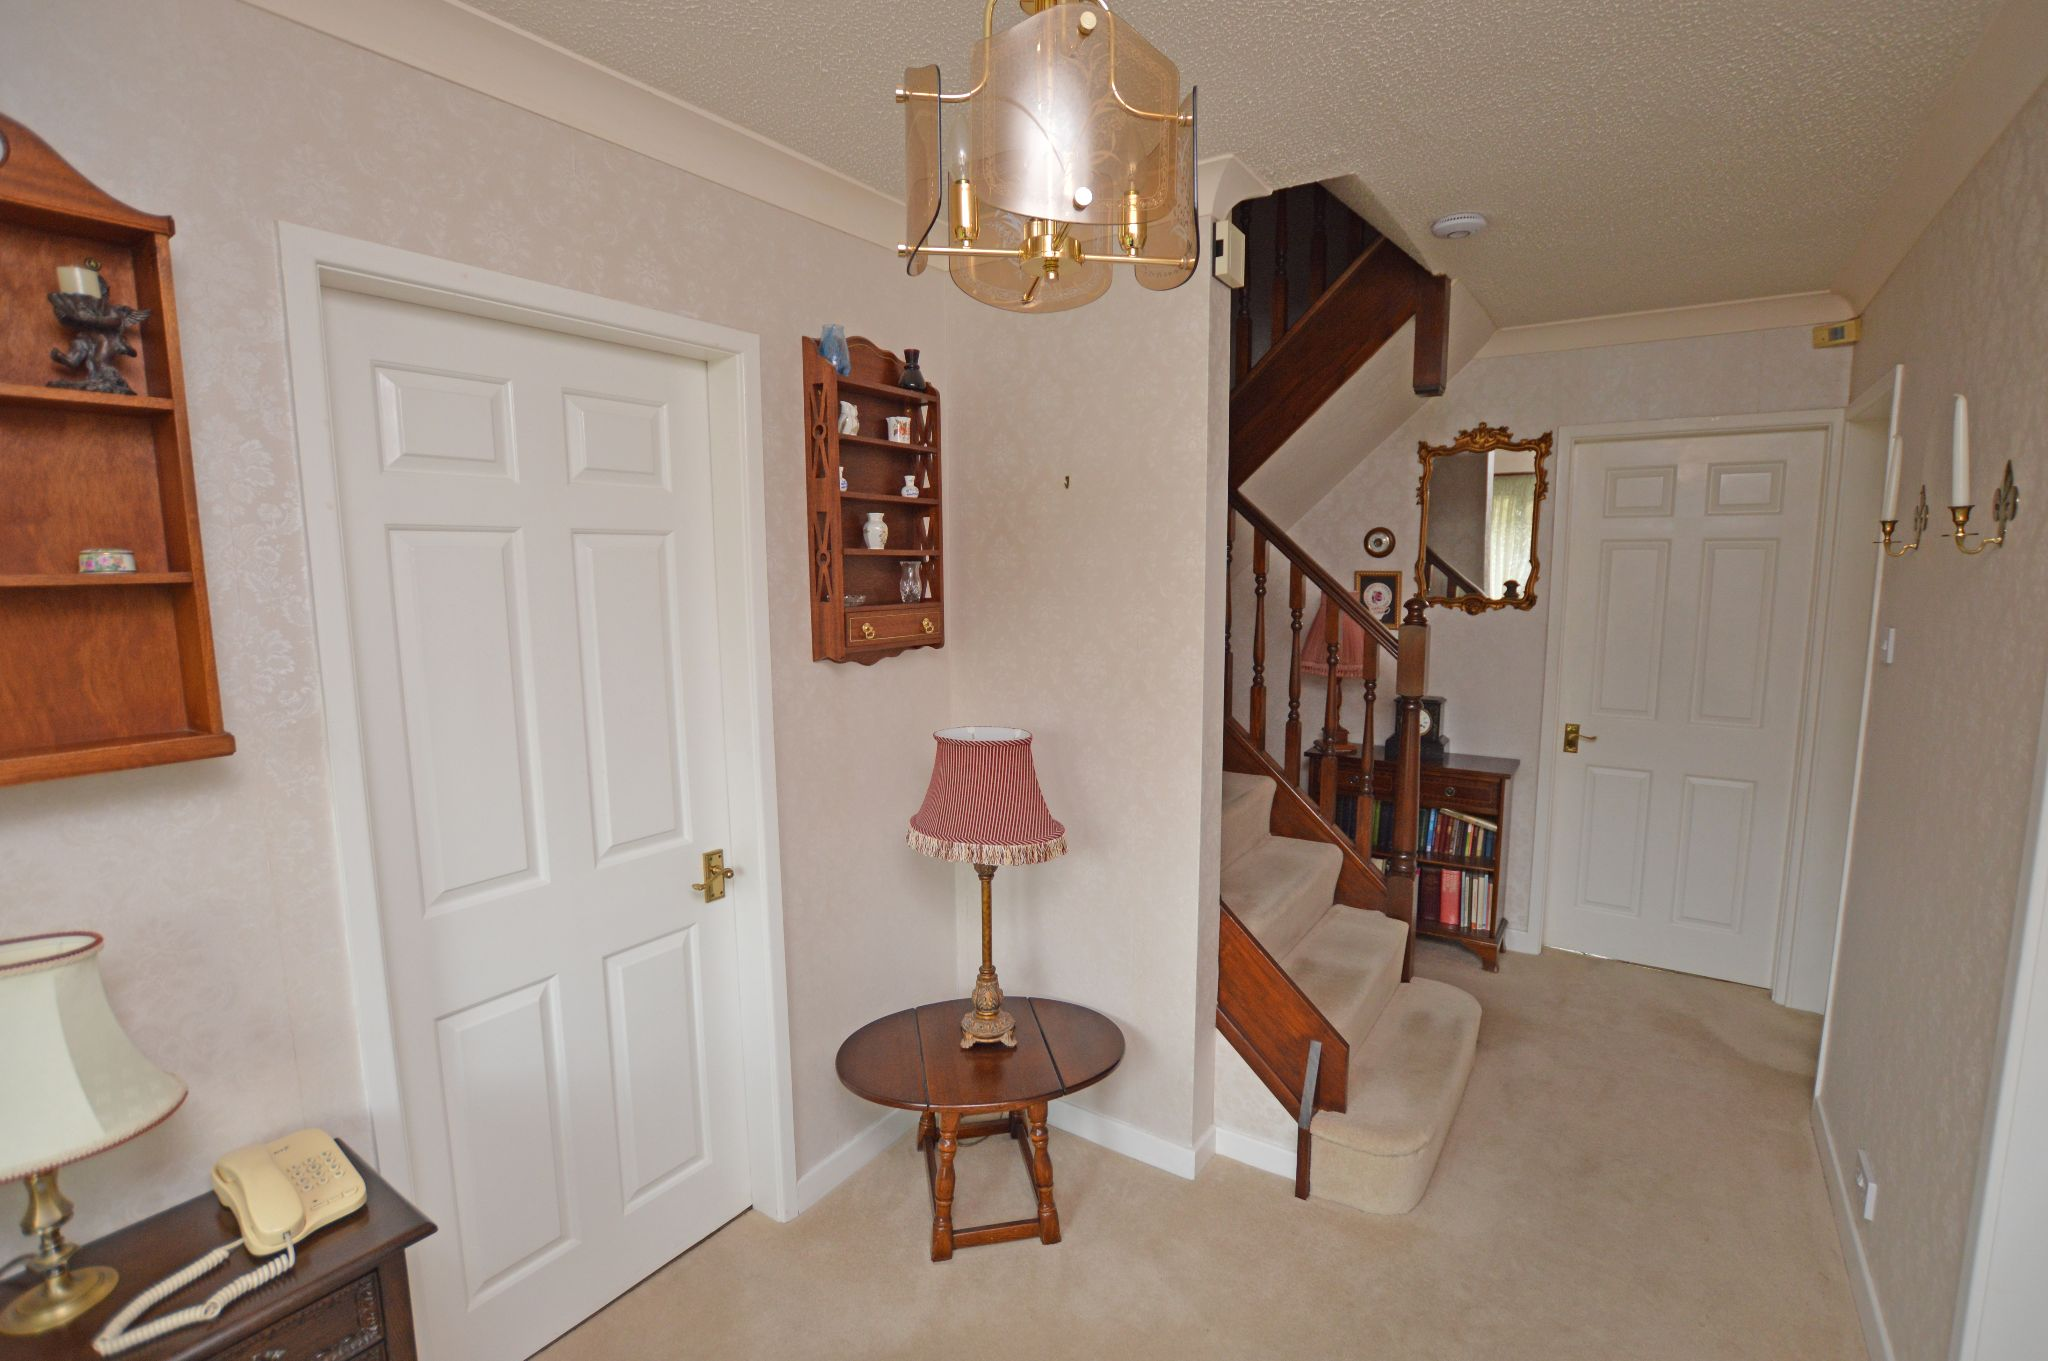 4 bedroom detached house For Sale in Abergele - Hallway